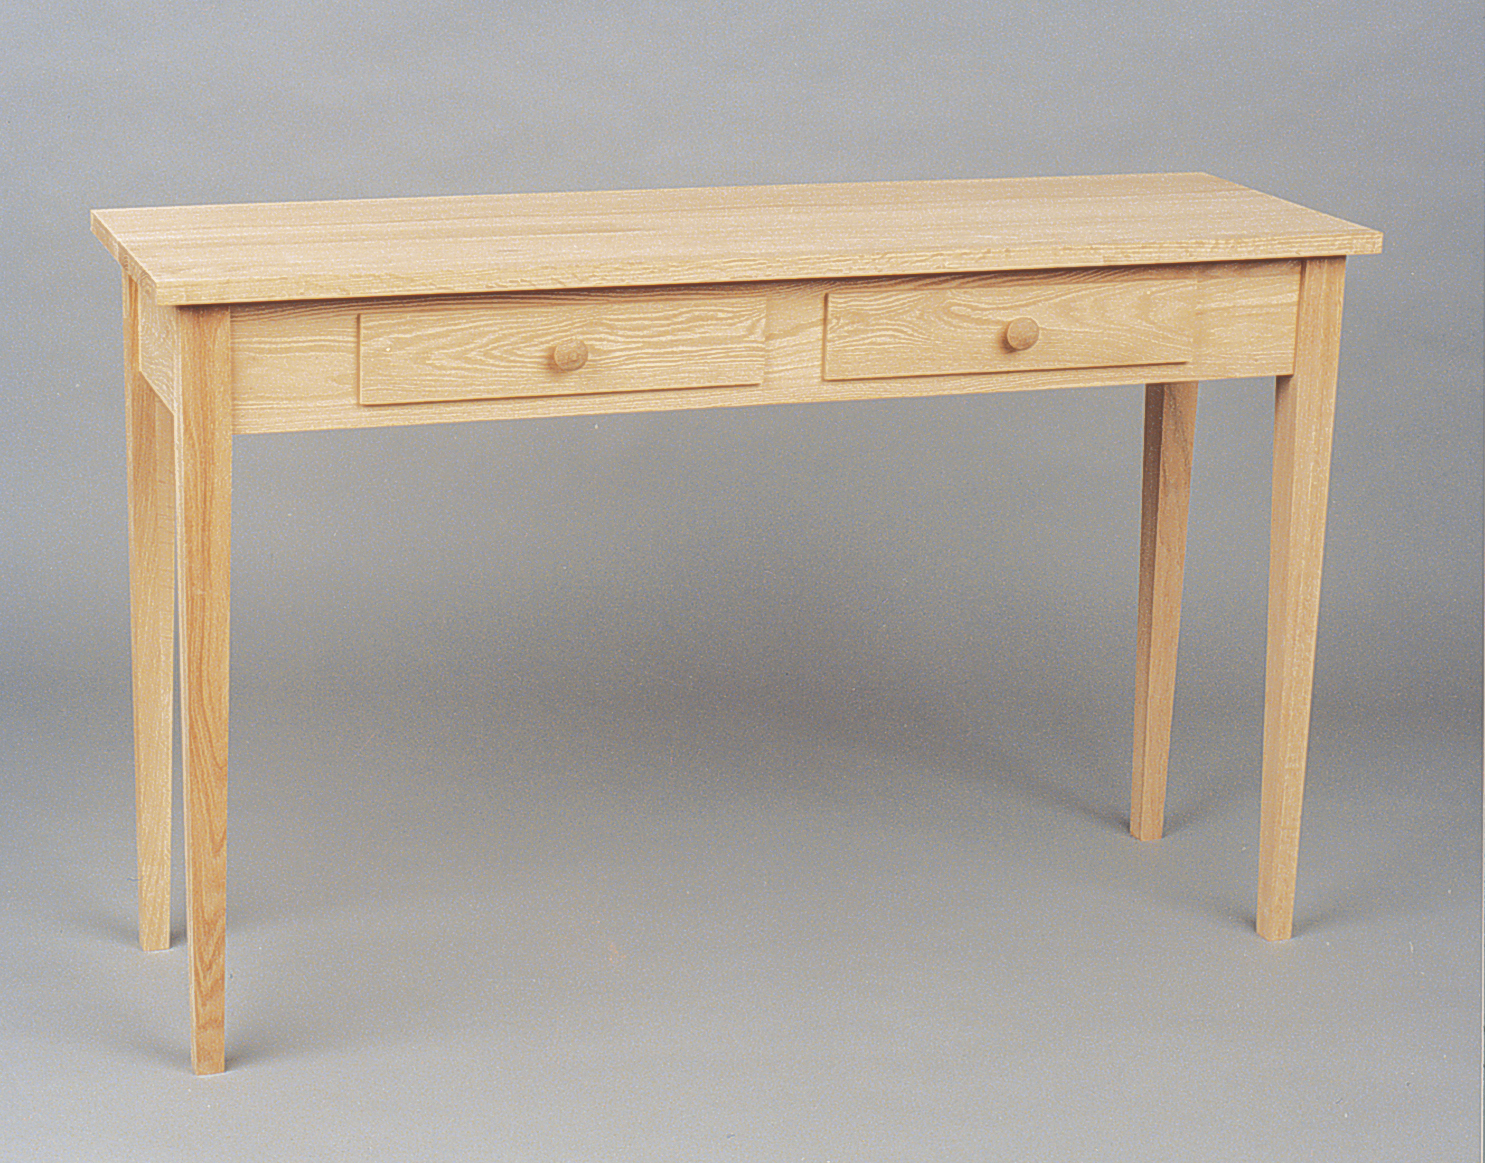 Sofa Table With Drawers Newport Sofa Table Find The